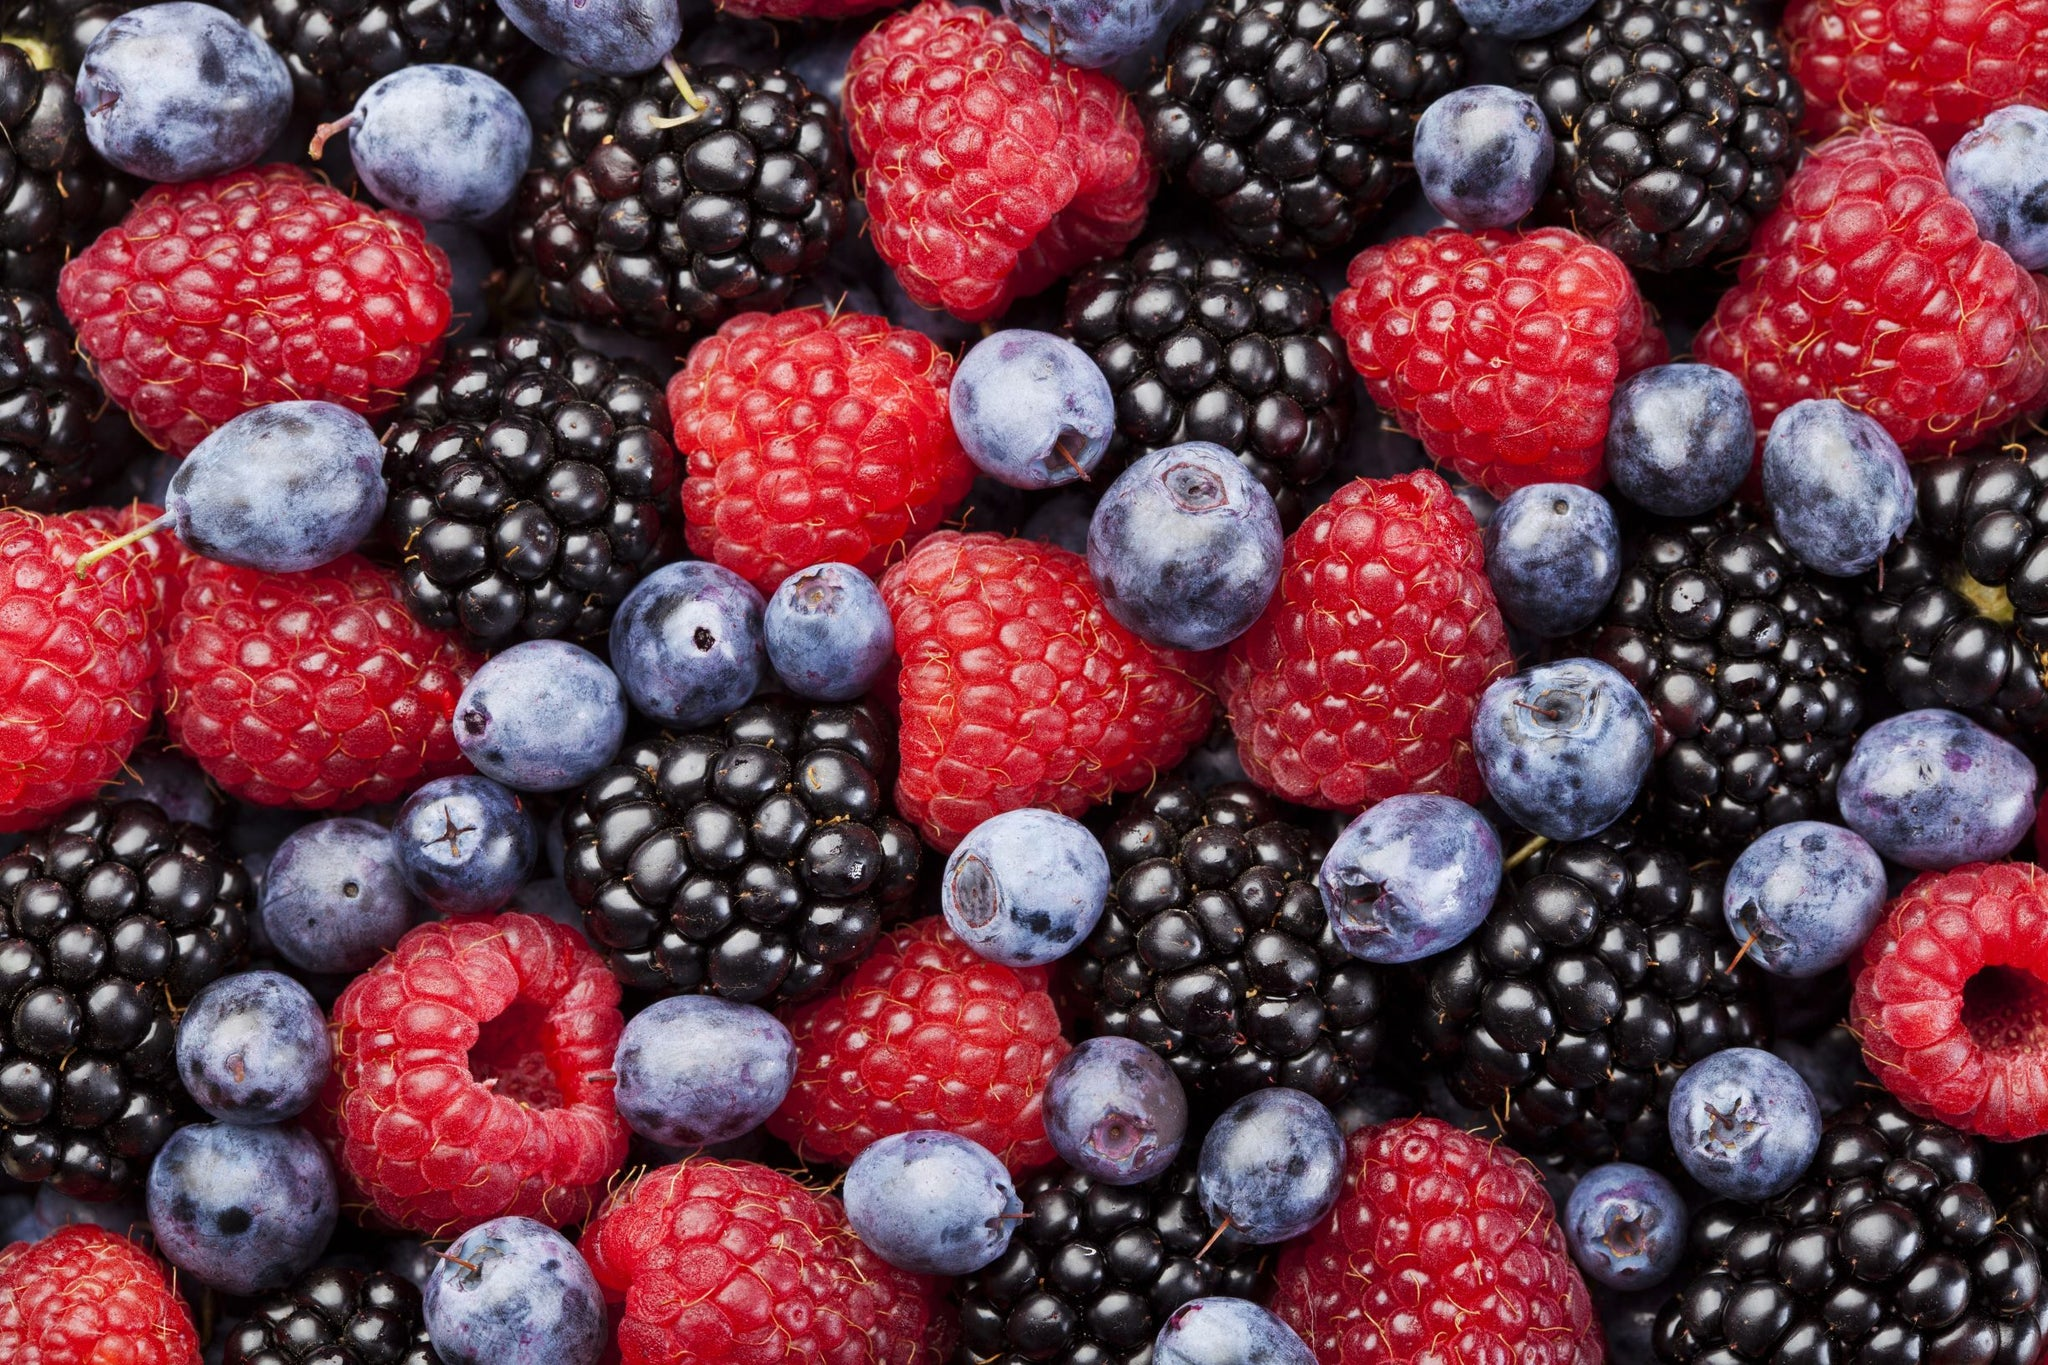 Sysco Classic Individually Quick Frozen Mixed Berry Blend - Blueberries/Blackberries/Strawberries/Raspberries 2.5 kg - 2 Pack [$7.53/kg]